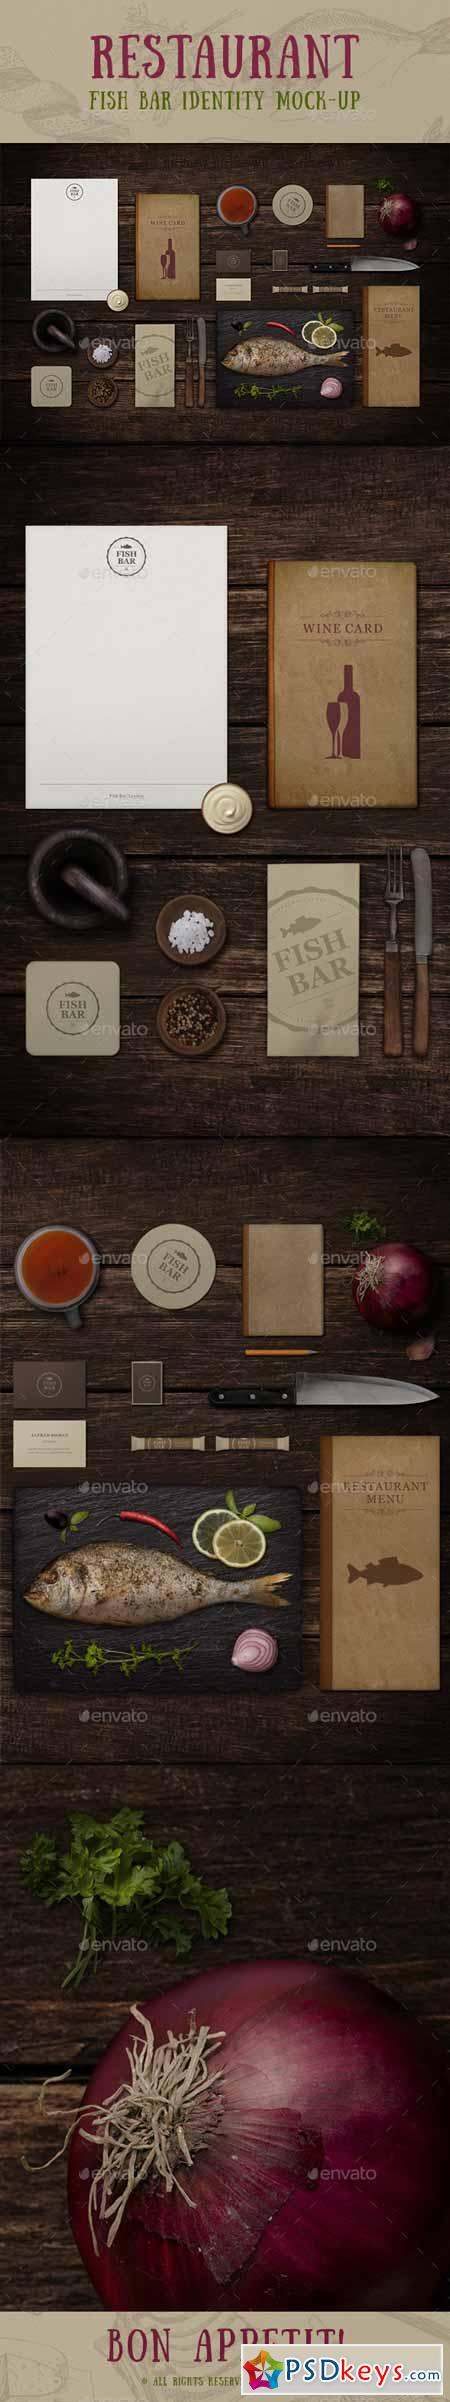 Restaurant Fish Bar Identity Mock-up 10734264